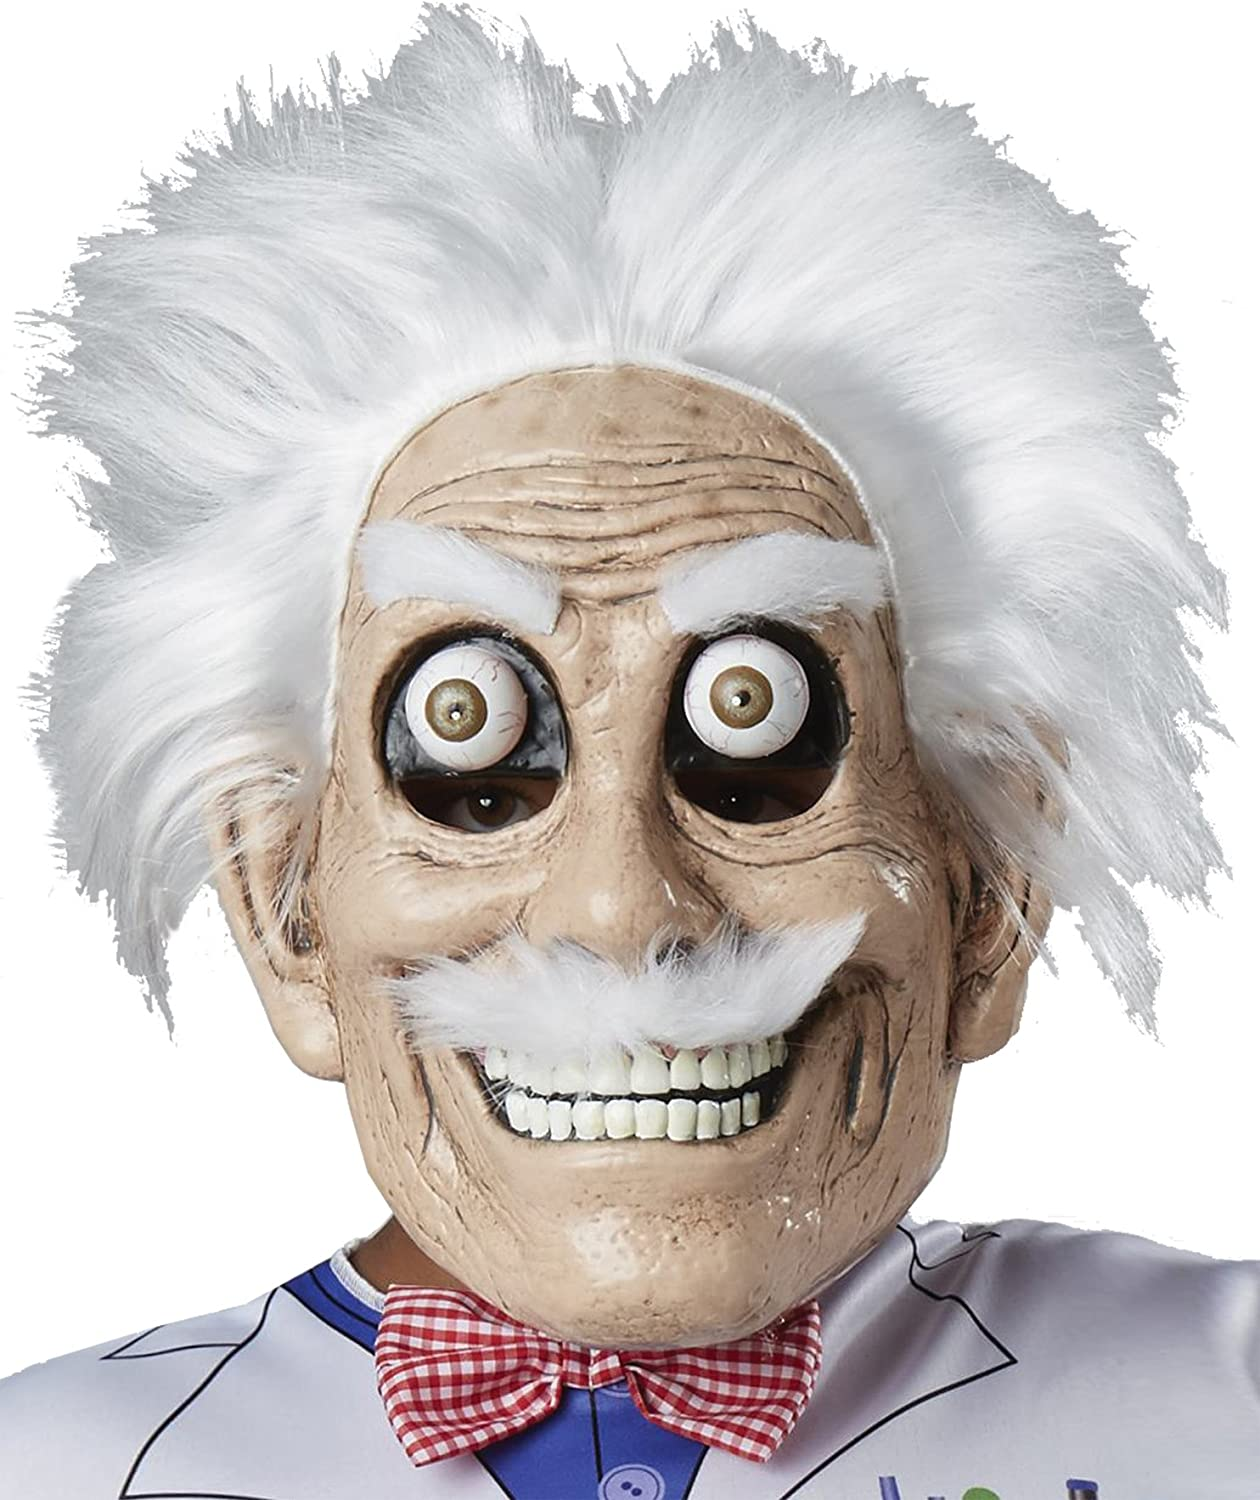 Morris Costumes Direct sale of manufacturer Washington Mall - Mad Eyes Scientist Mask Googly